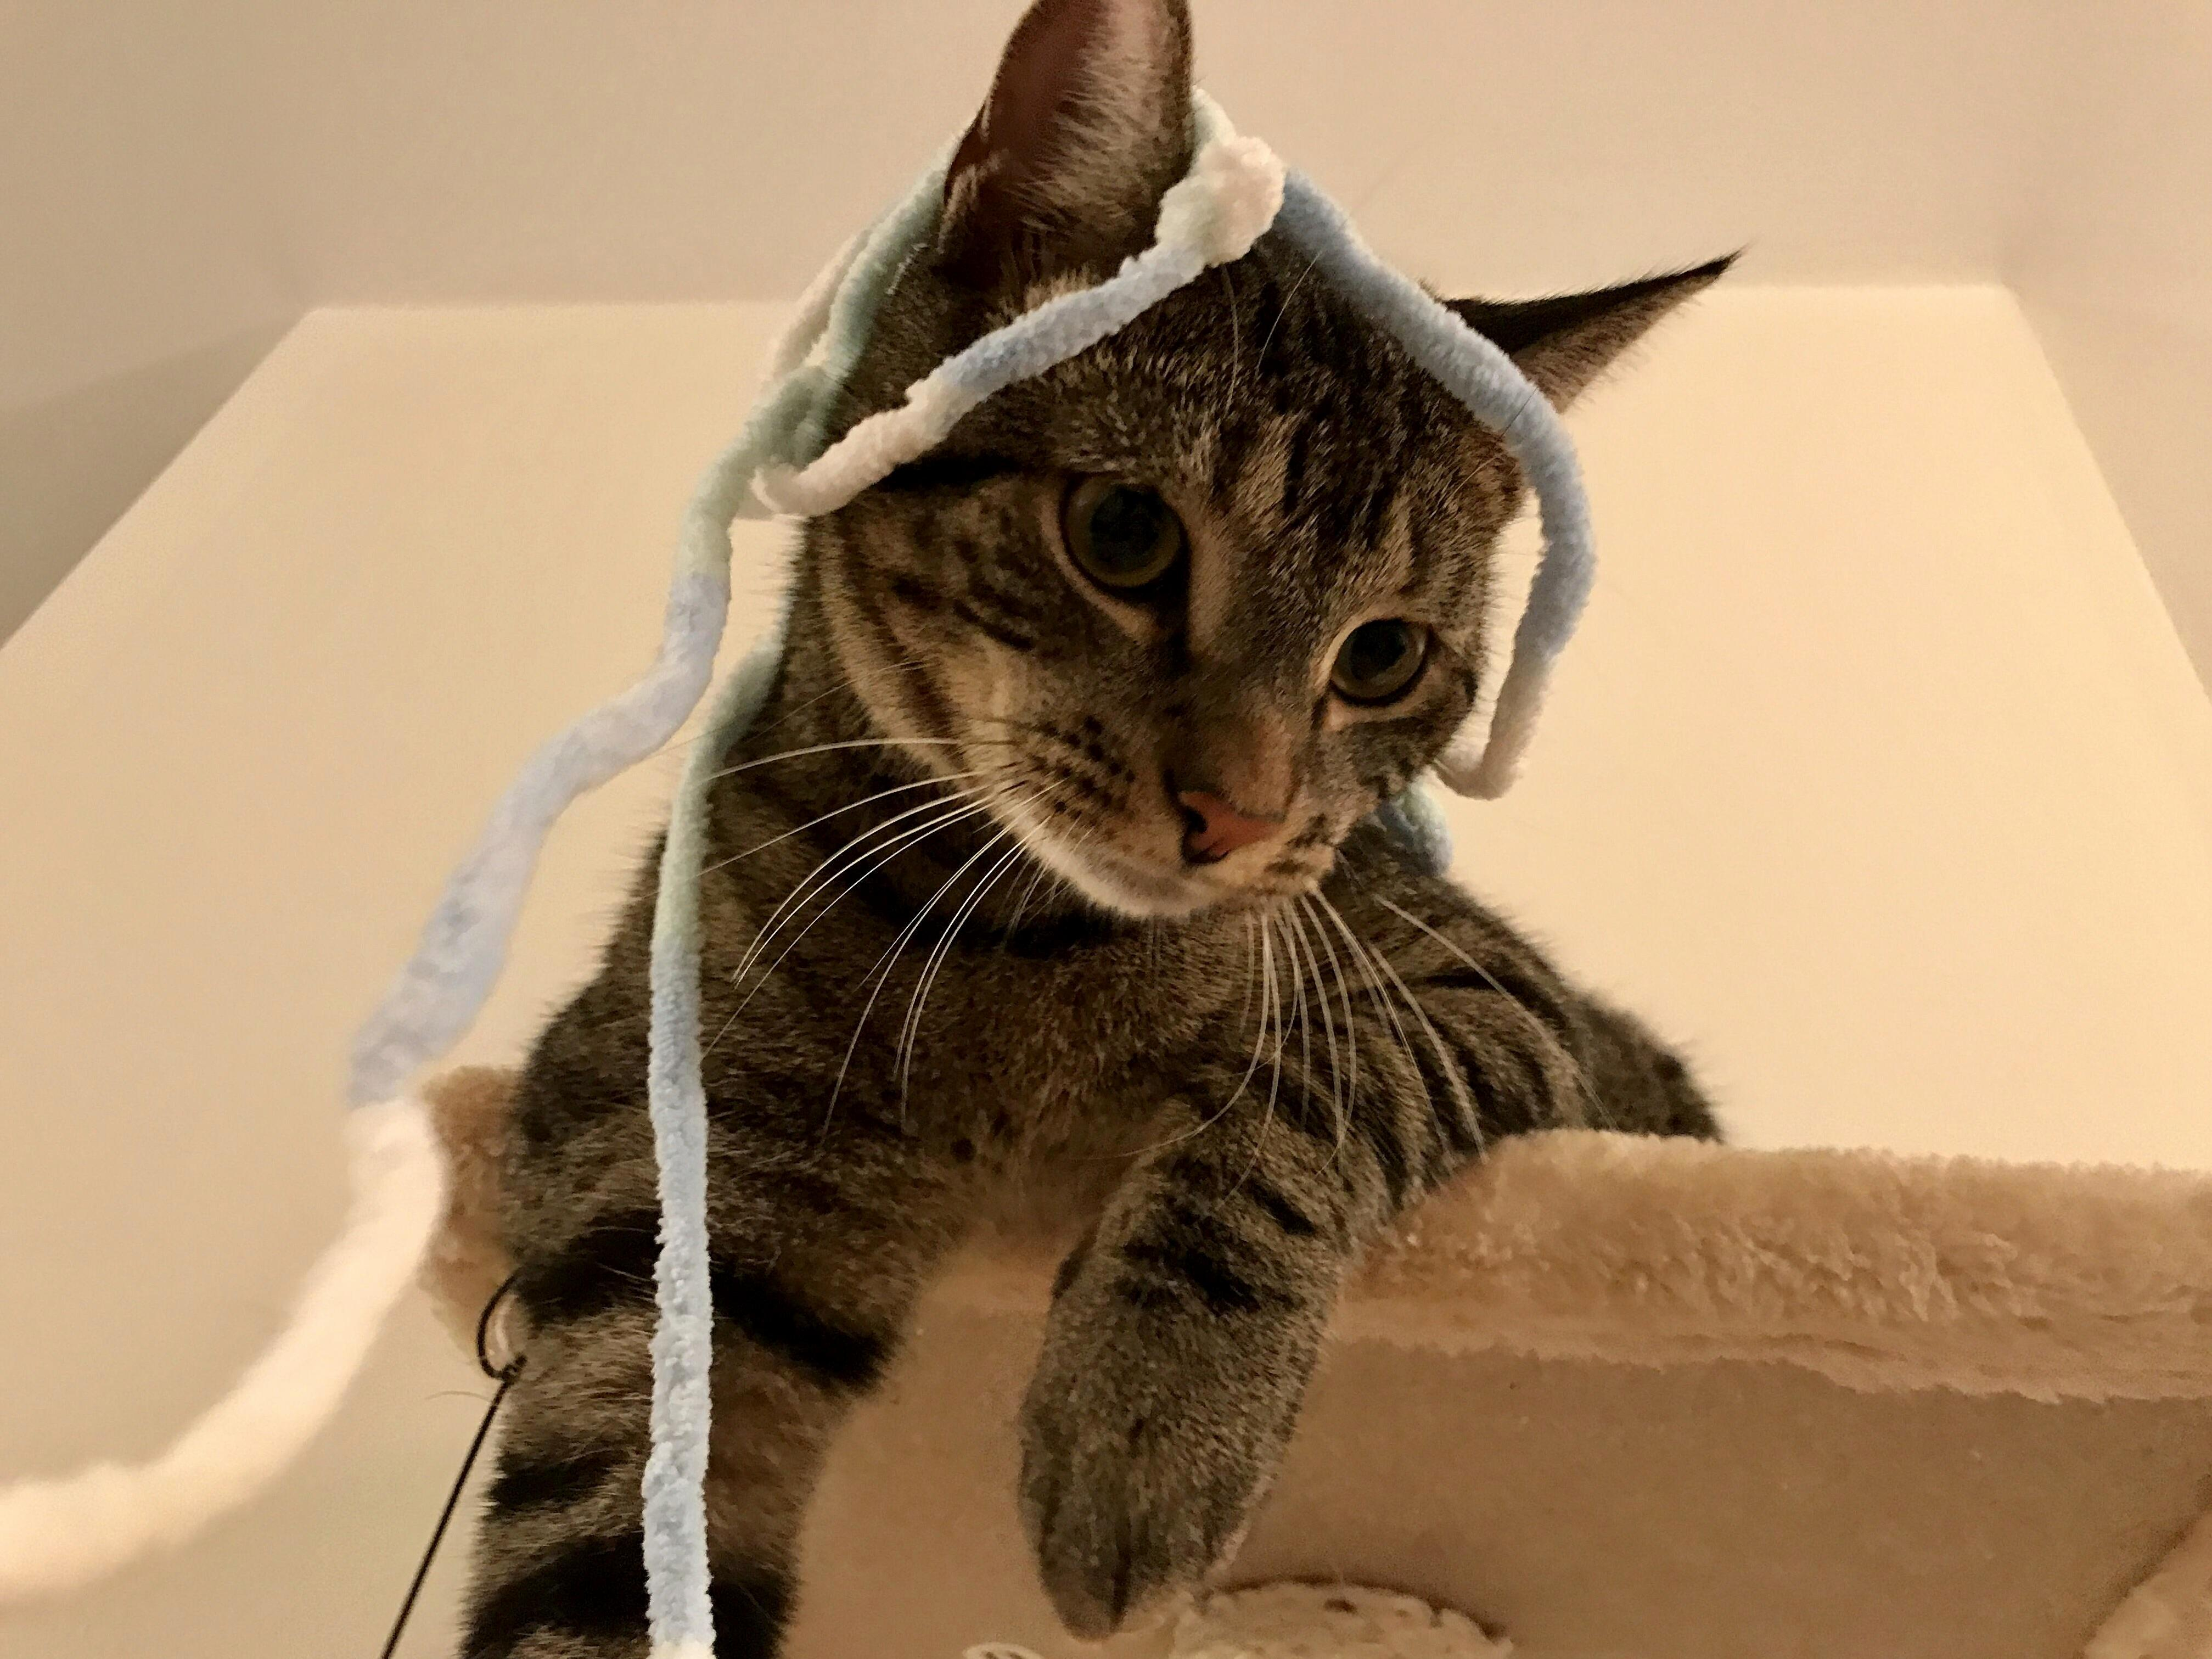 Someone had himself a crazy string party